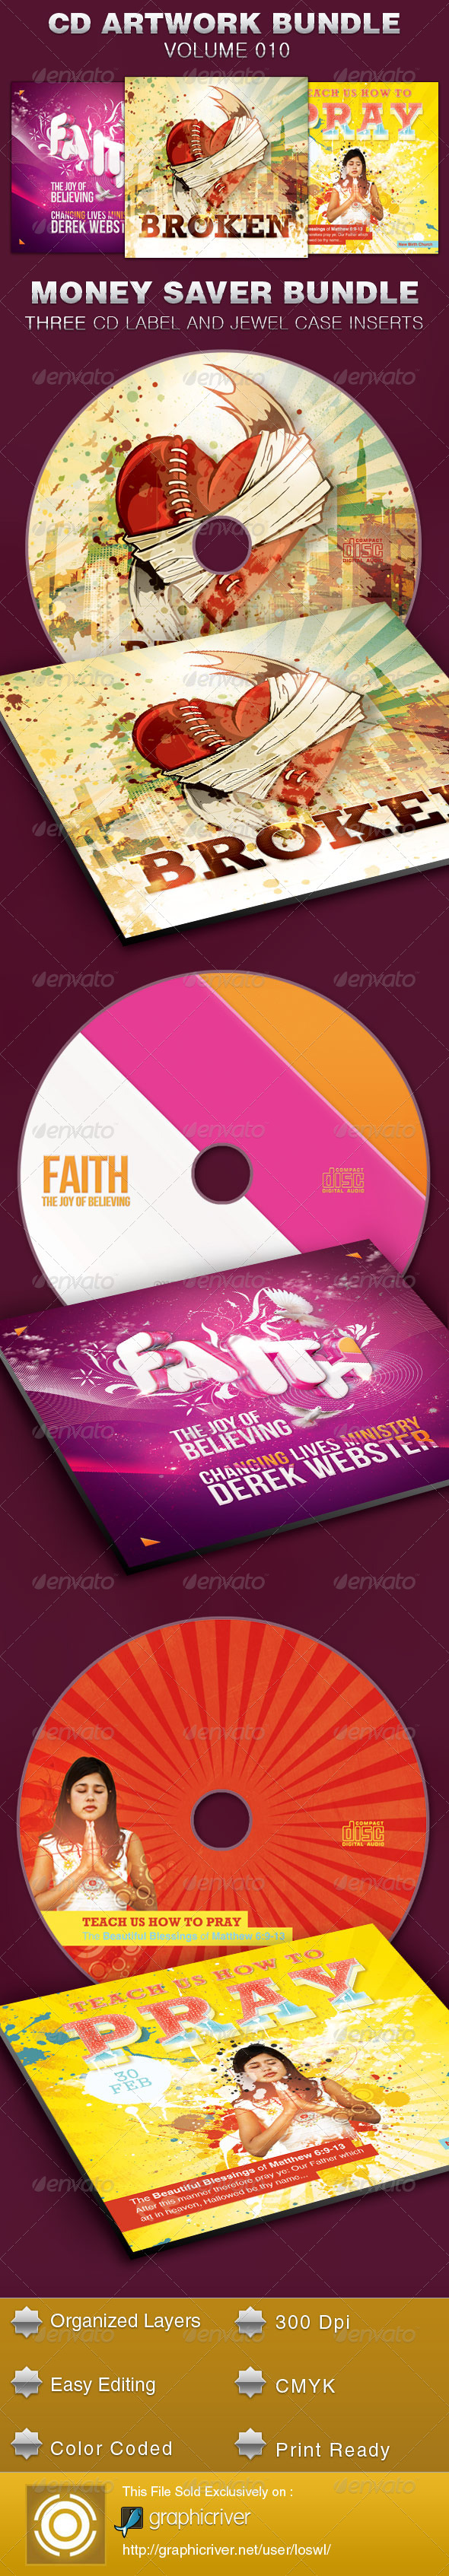 CD Cover Artwork Template Bundle-Vol 010 - CD & DVD Artwork Print Templates